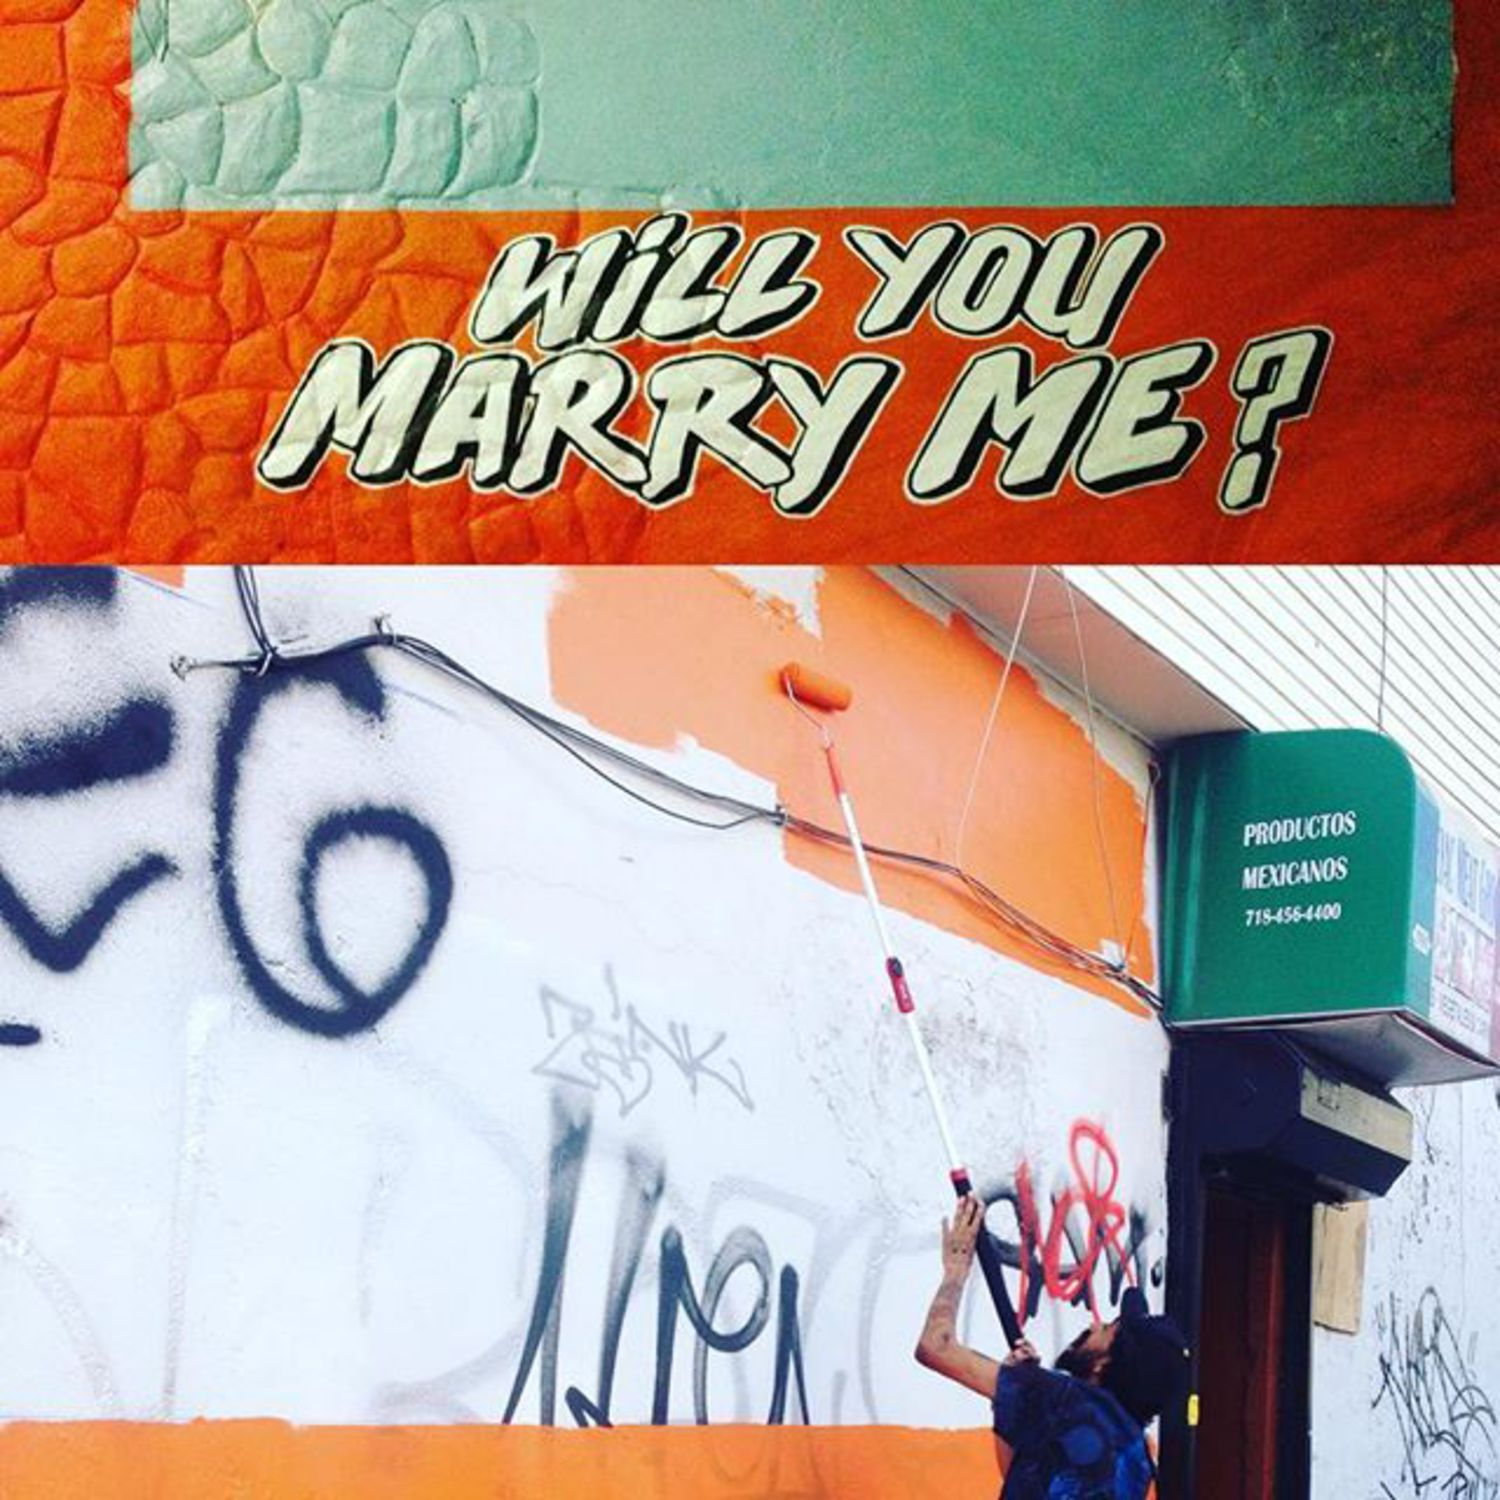 __________ Will you marry me?  in the works on knickerbocker and Jefferson st Brooklyn NY. I'll be here all day! Thanks for helping yesterday @benrobey helped